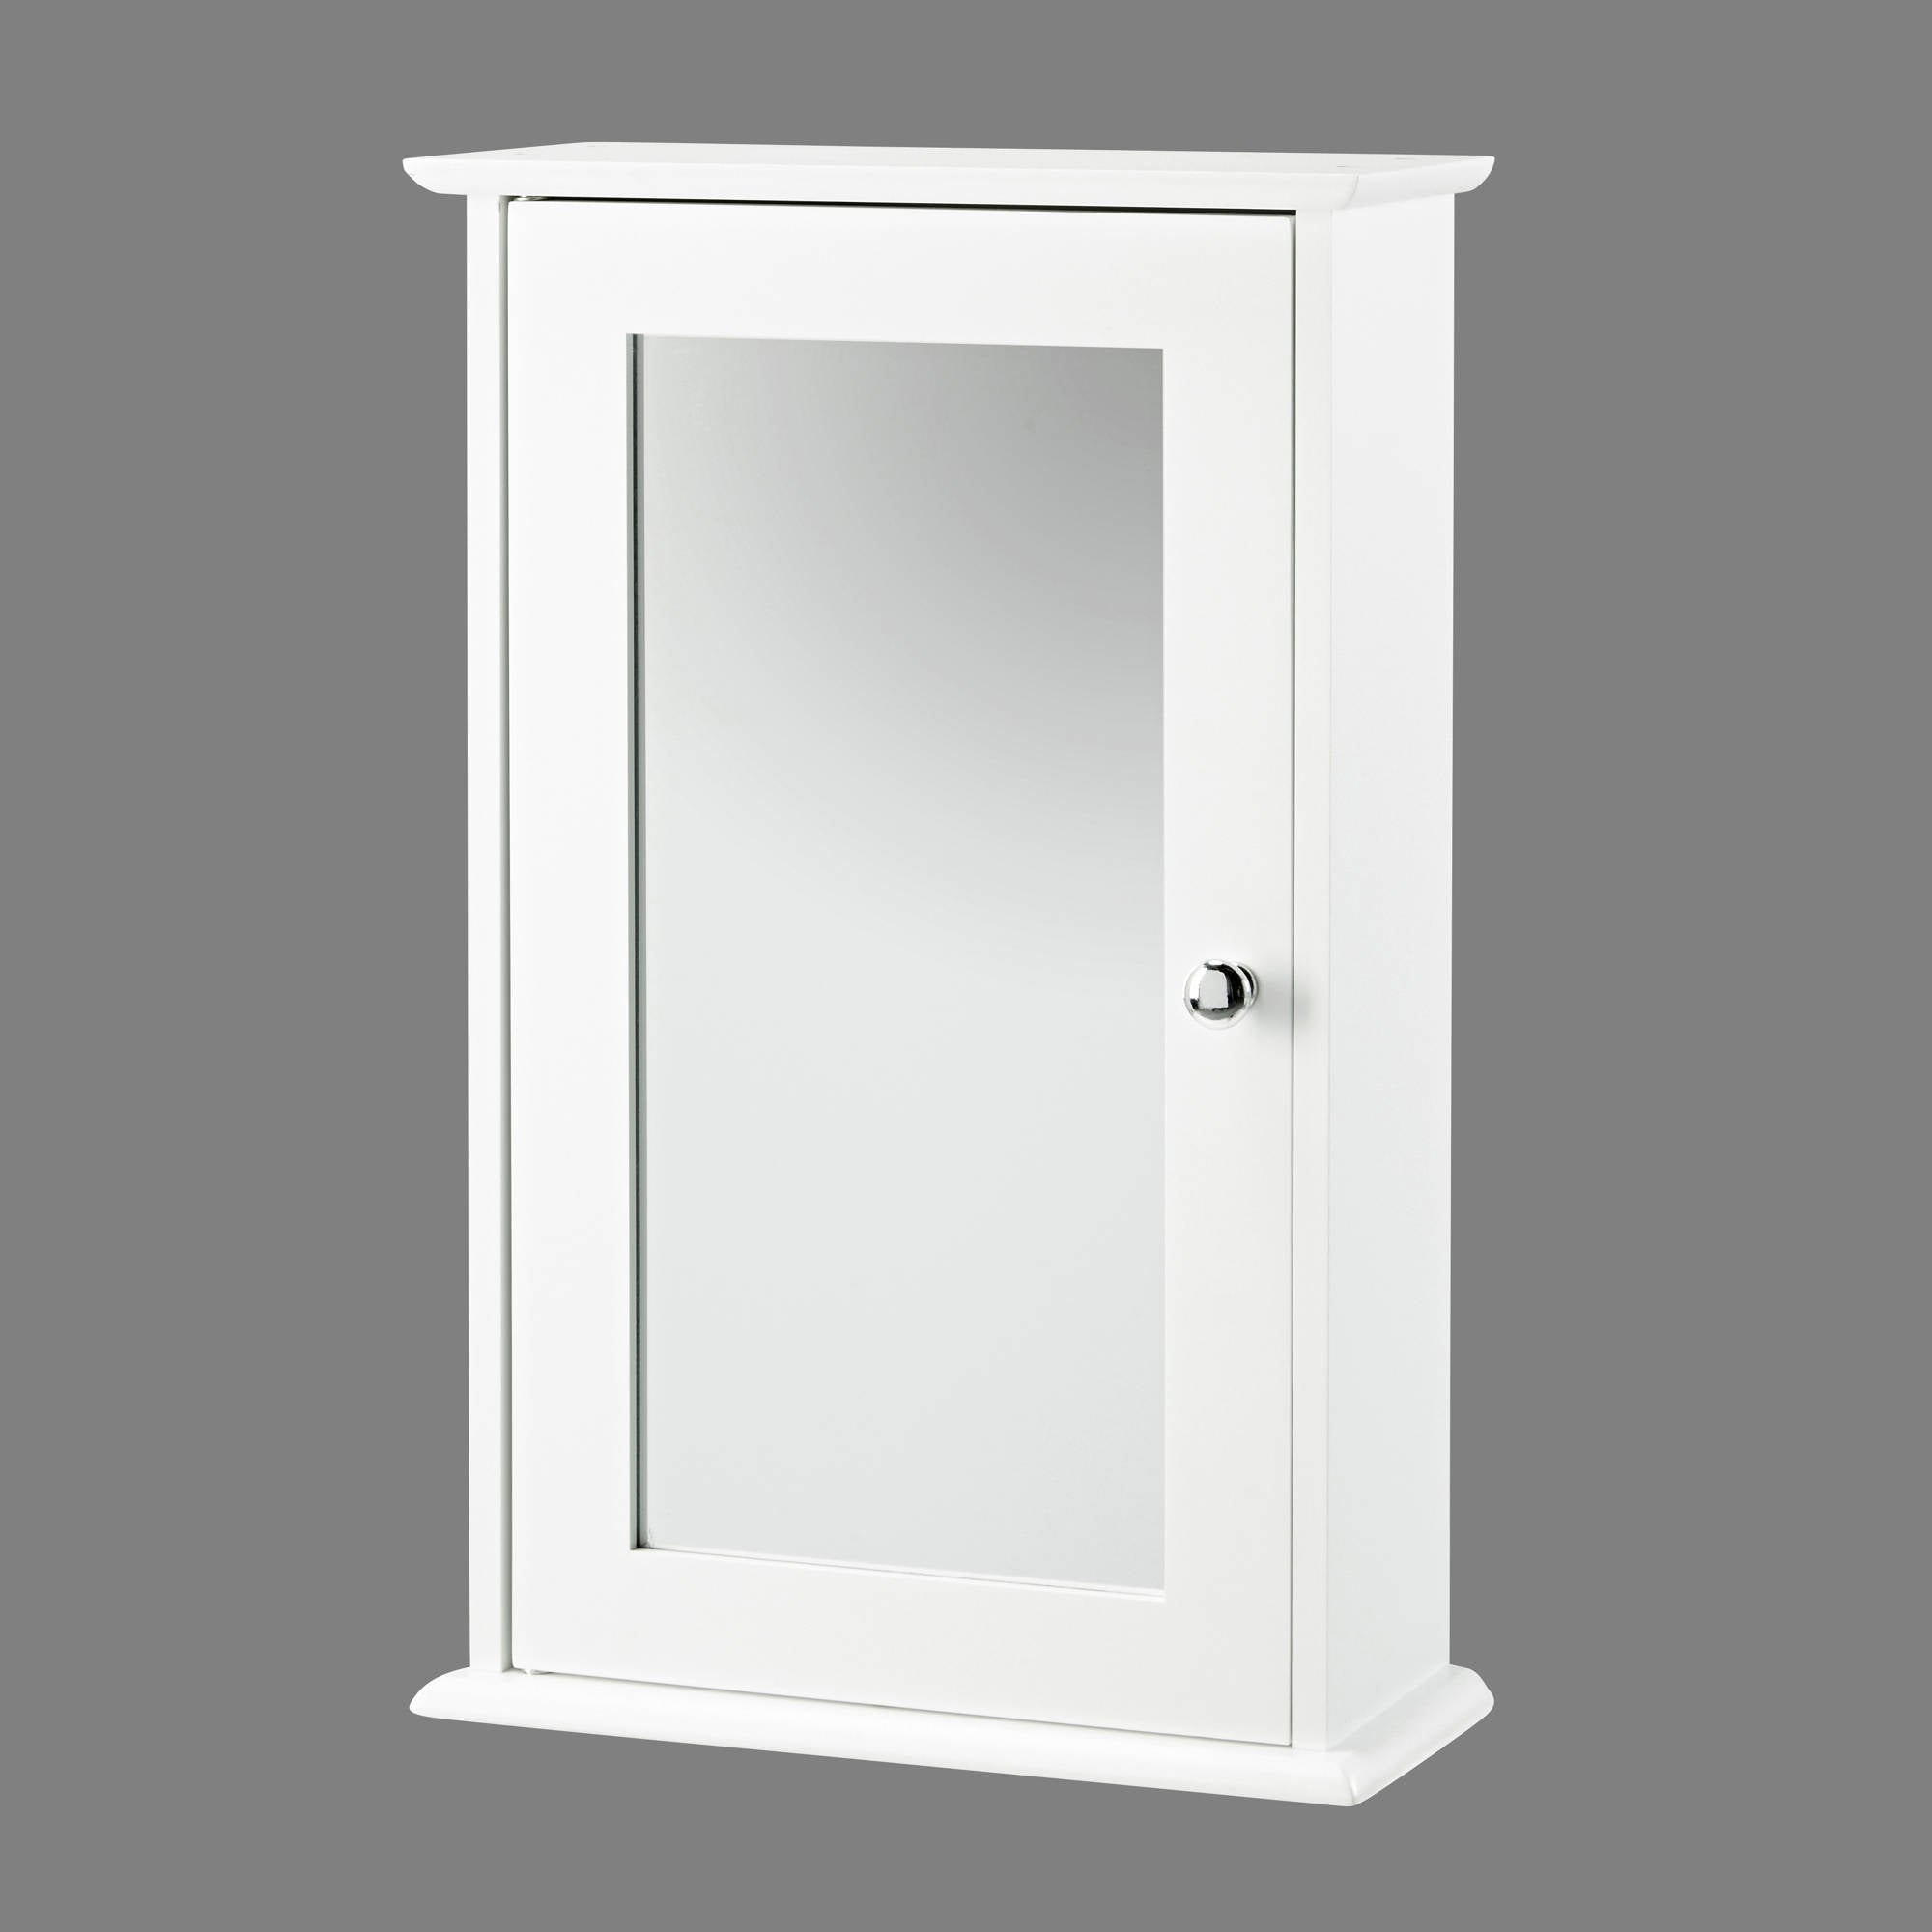 Kodiak White Mirrored Wall Cabinet - Ezzo